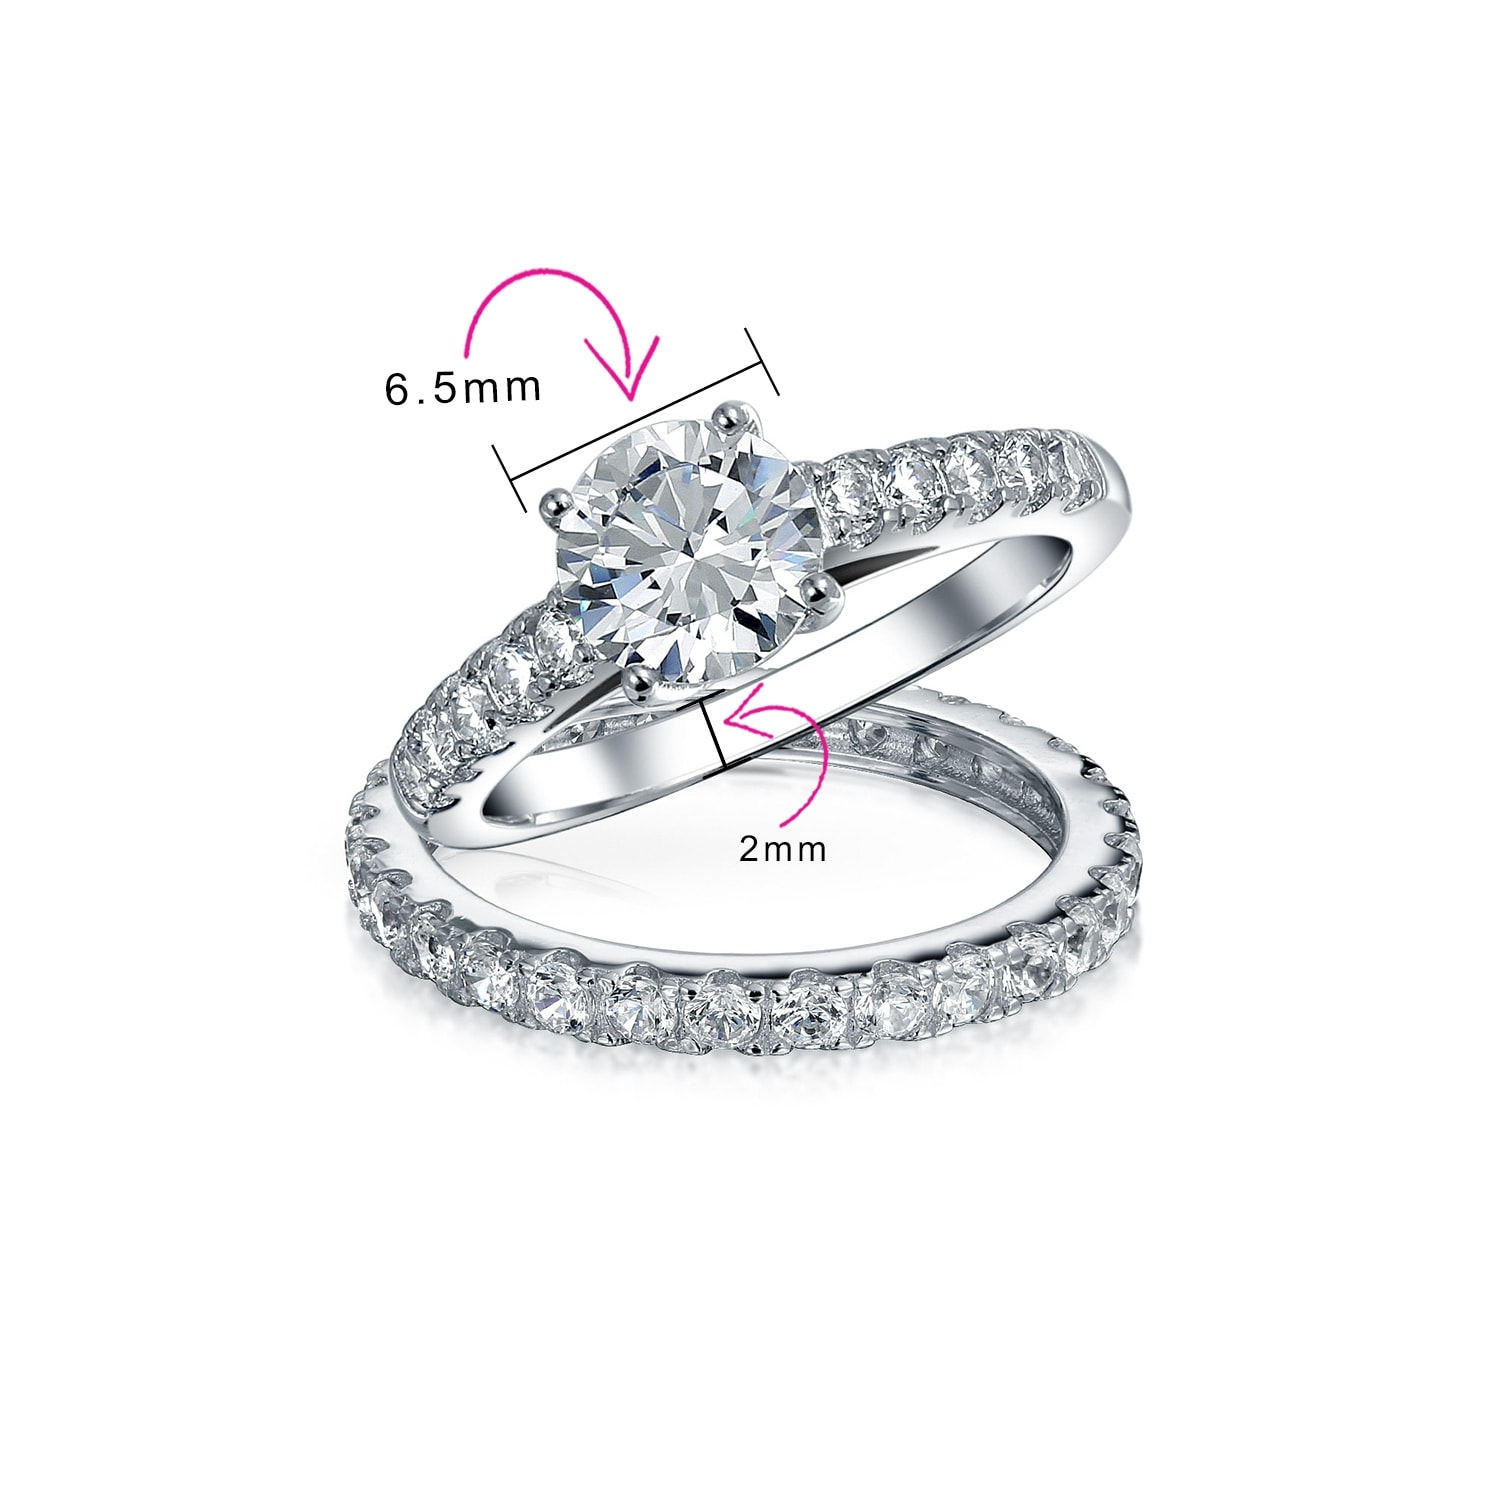 Details about  /1ct Round Engagement Ring //Wedding Band SOLID Sterling Silver//Cubic Zirconia CZ